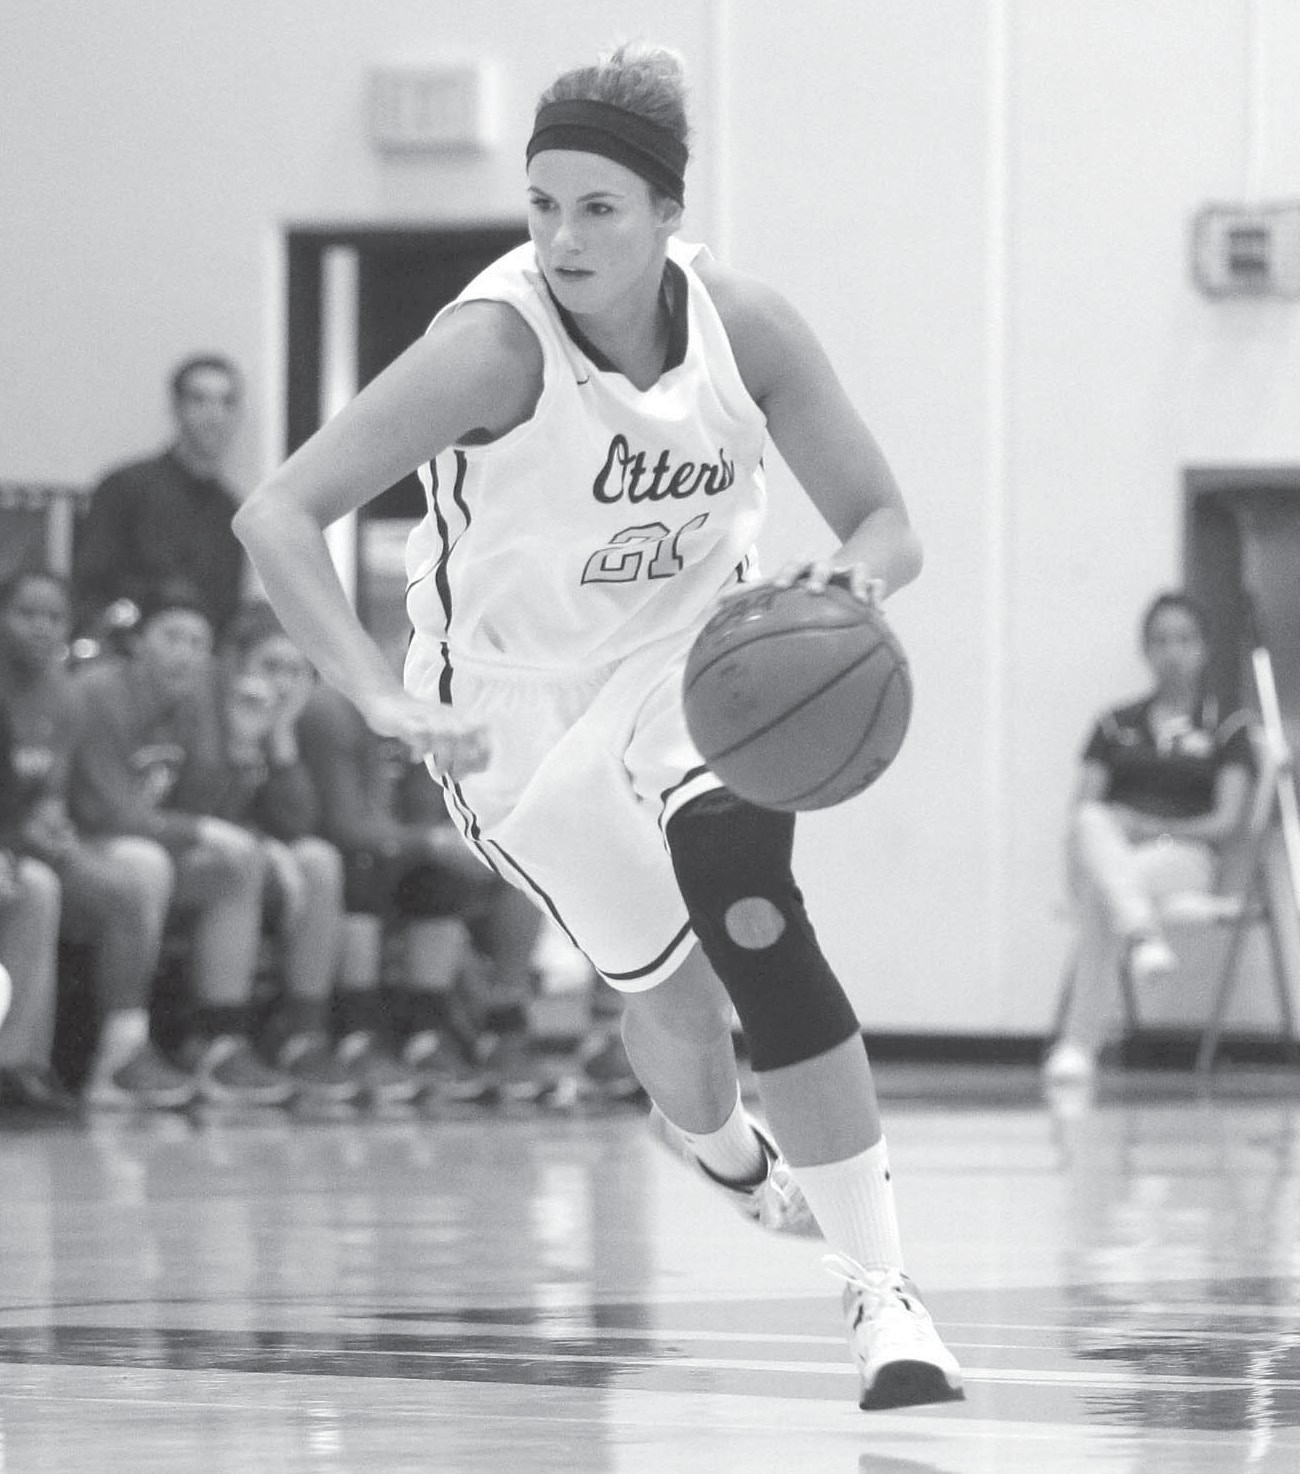 AT THE KELP BED—Jenna Bandy overcame two ACL tears in her playing career at Thousand Oaks High and Cal State Monterey Bay. Courtesy of Vernon McKnight Photography